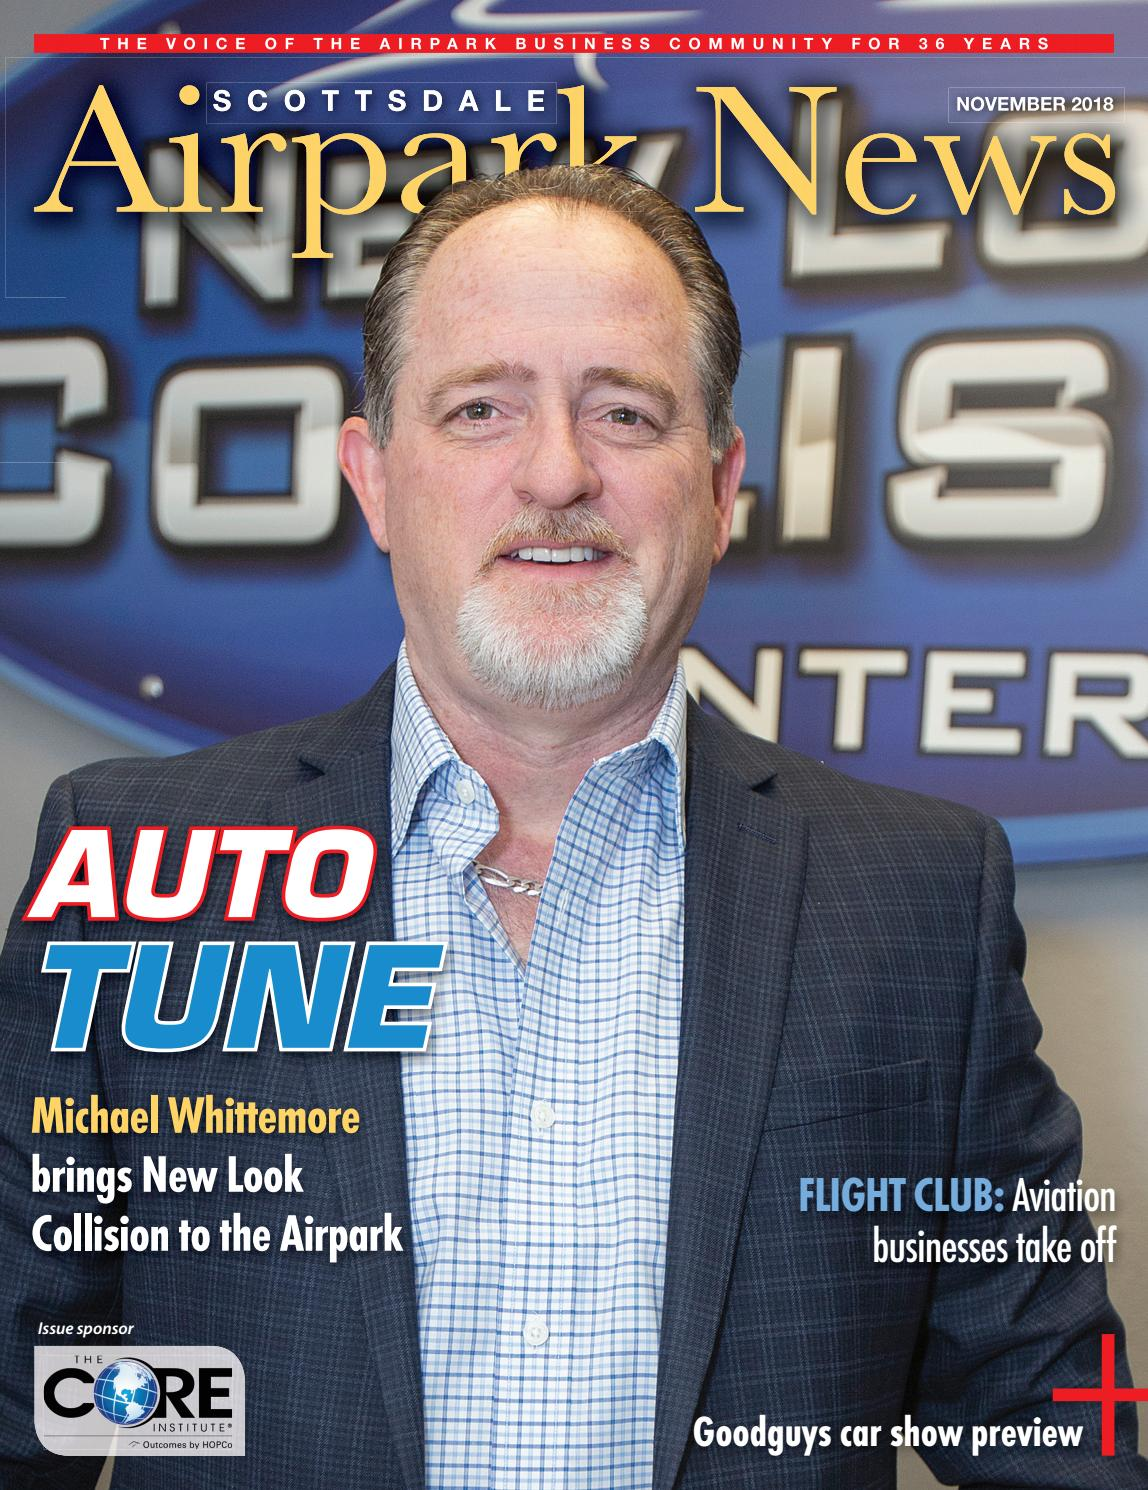 89327e49f67343 Scottsdale Airpark News - November 2018 by Times Media Group - issuu